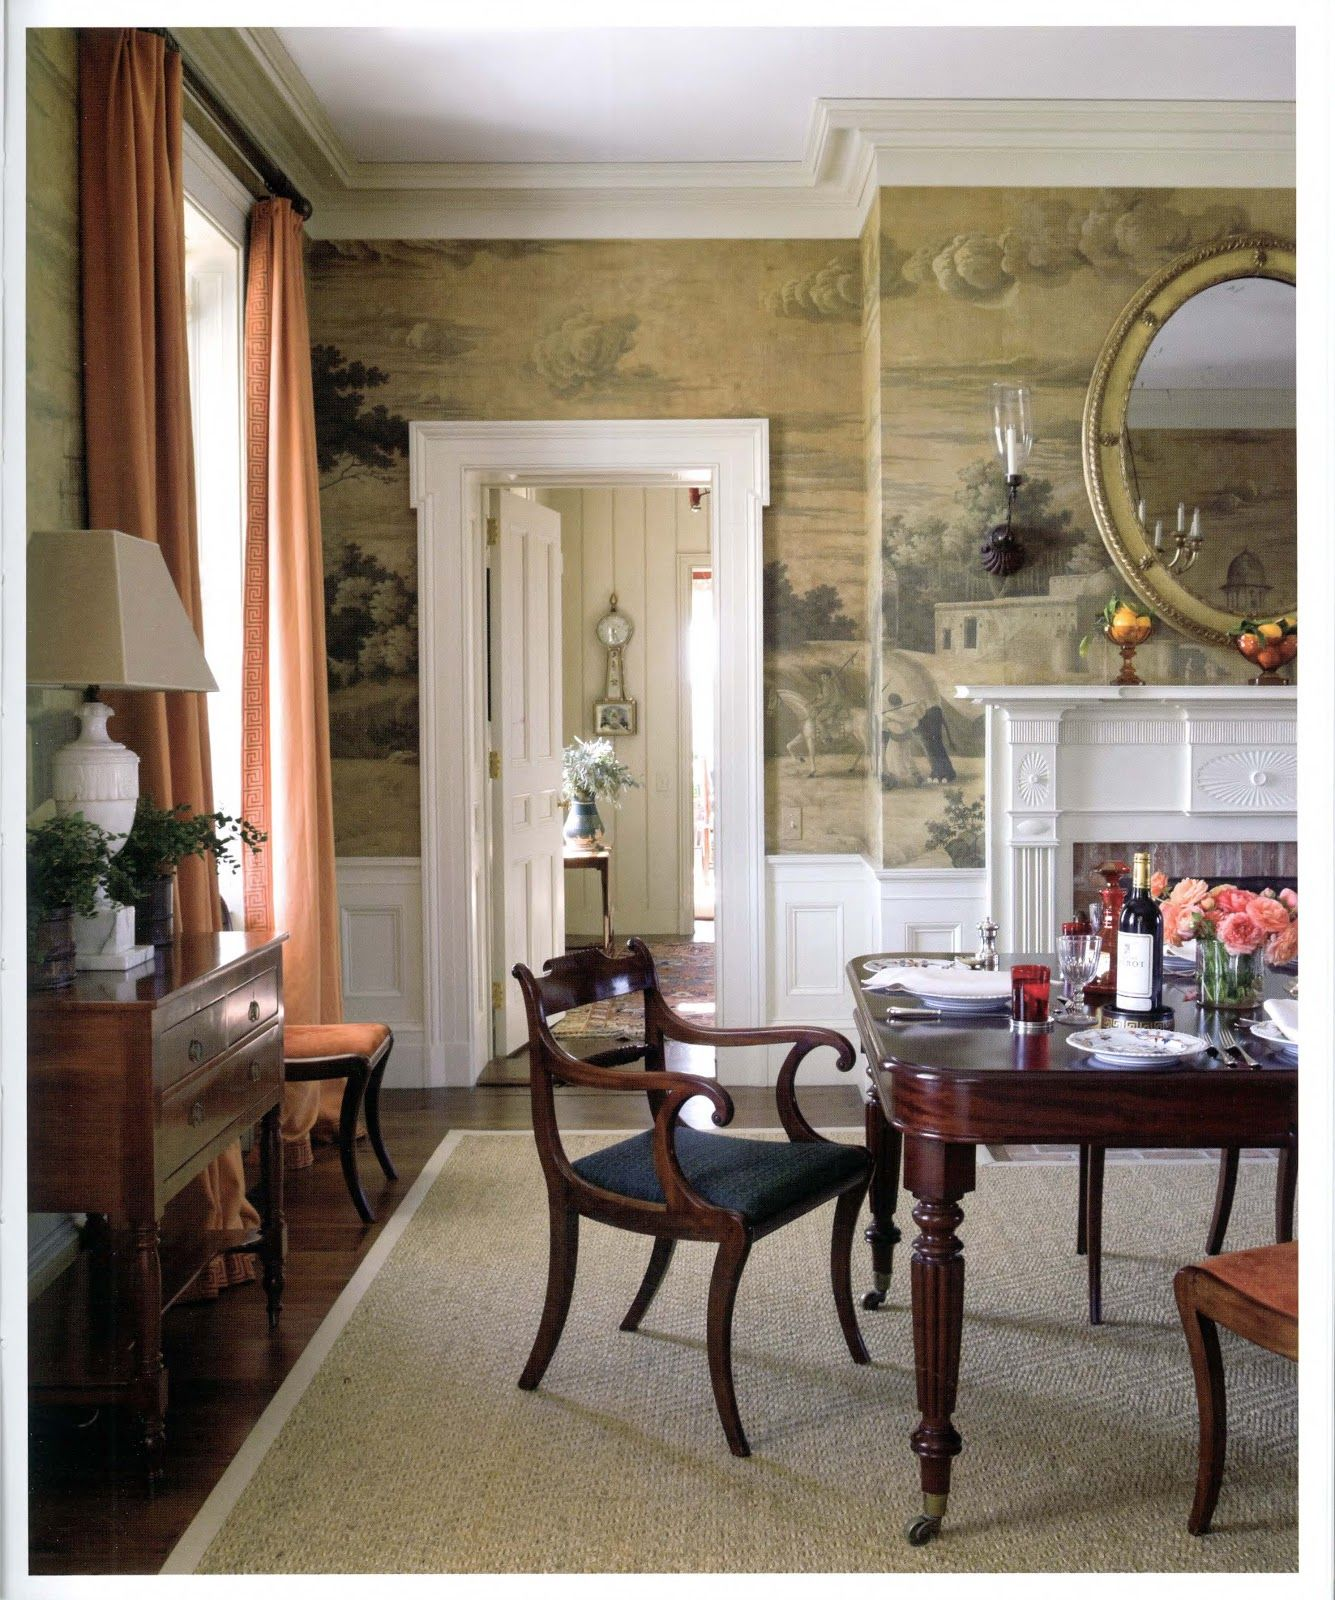 Dining Room Fireplace And Mirror Gil Schafer